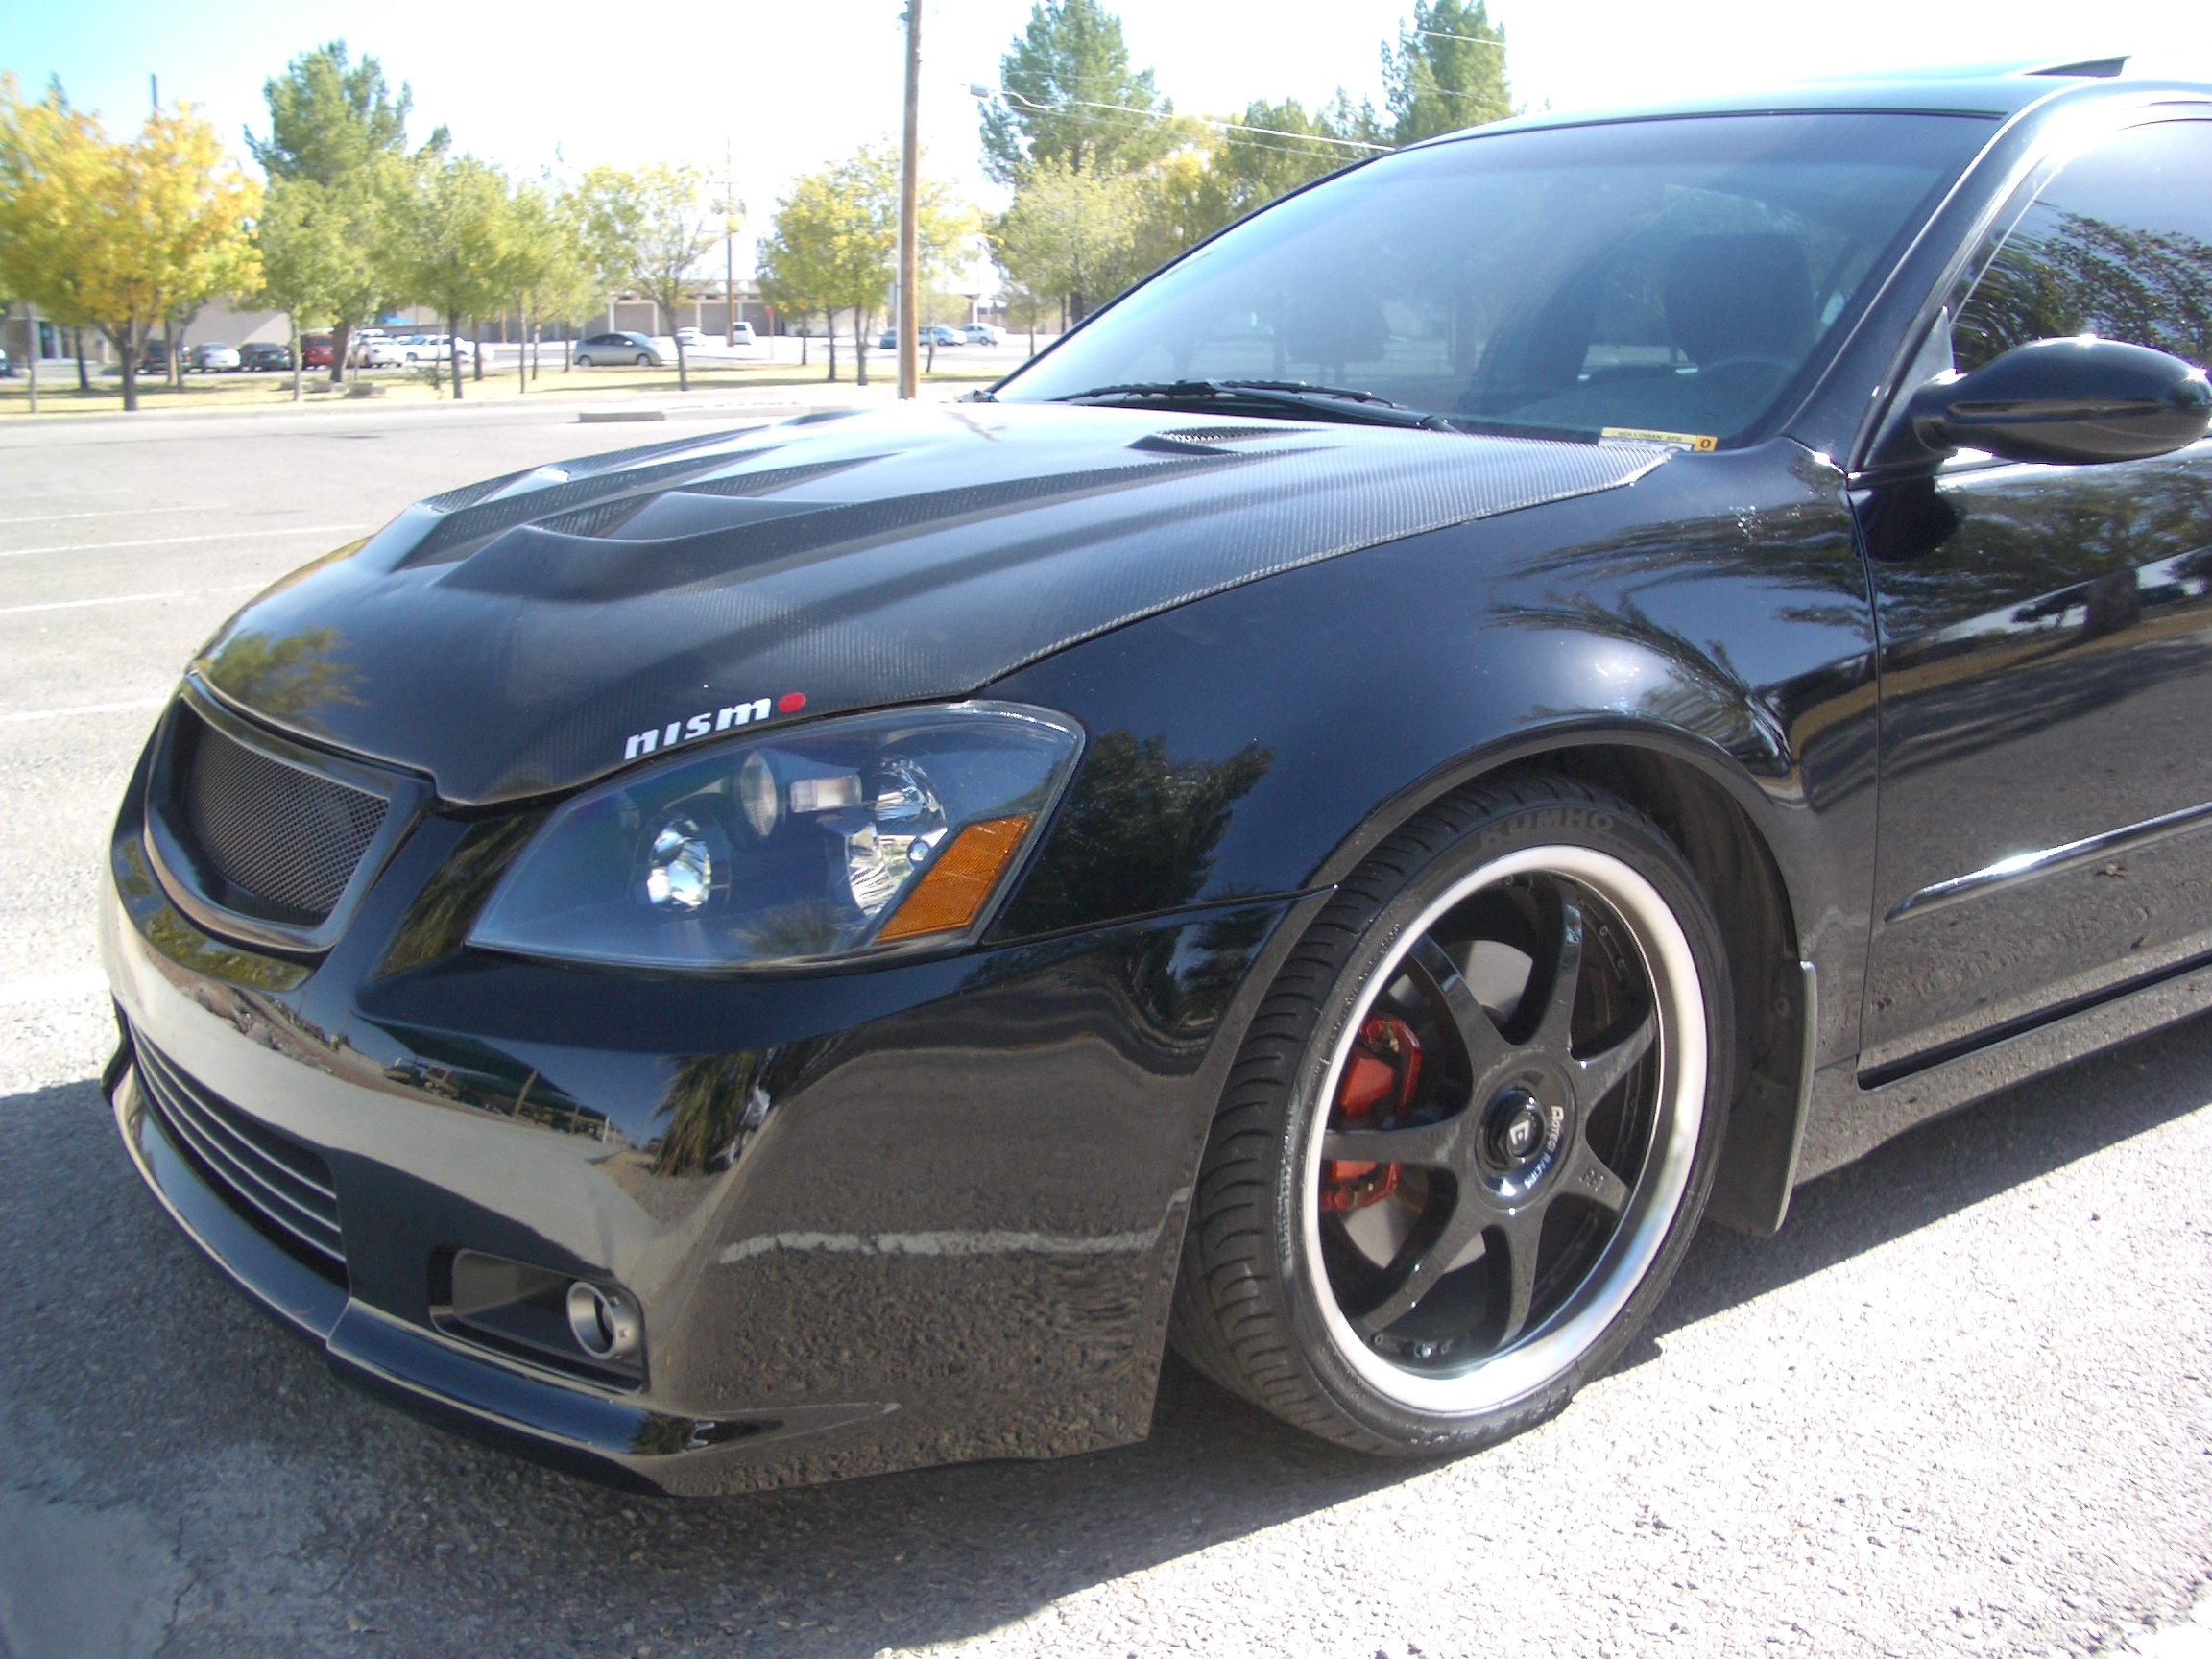 DJNocturnal06 2006 Nissan Altima Specs, Photos ...